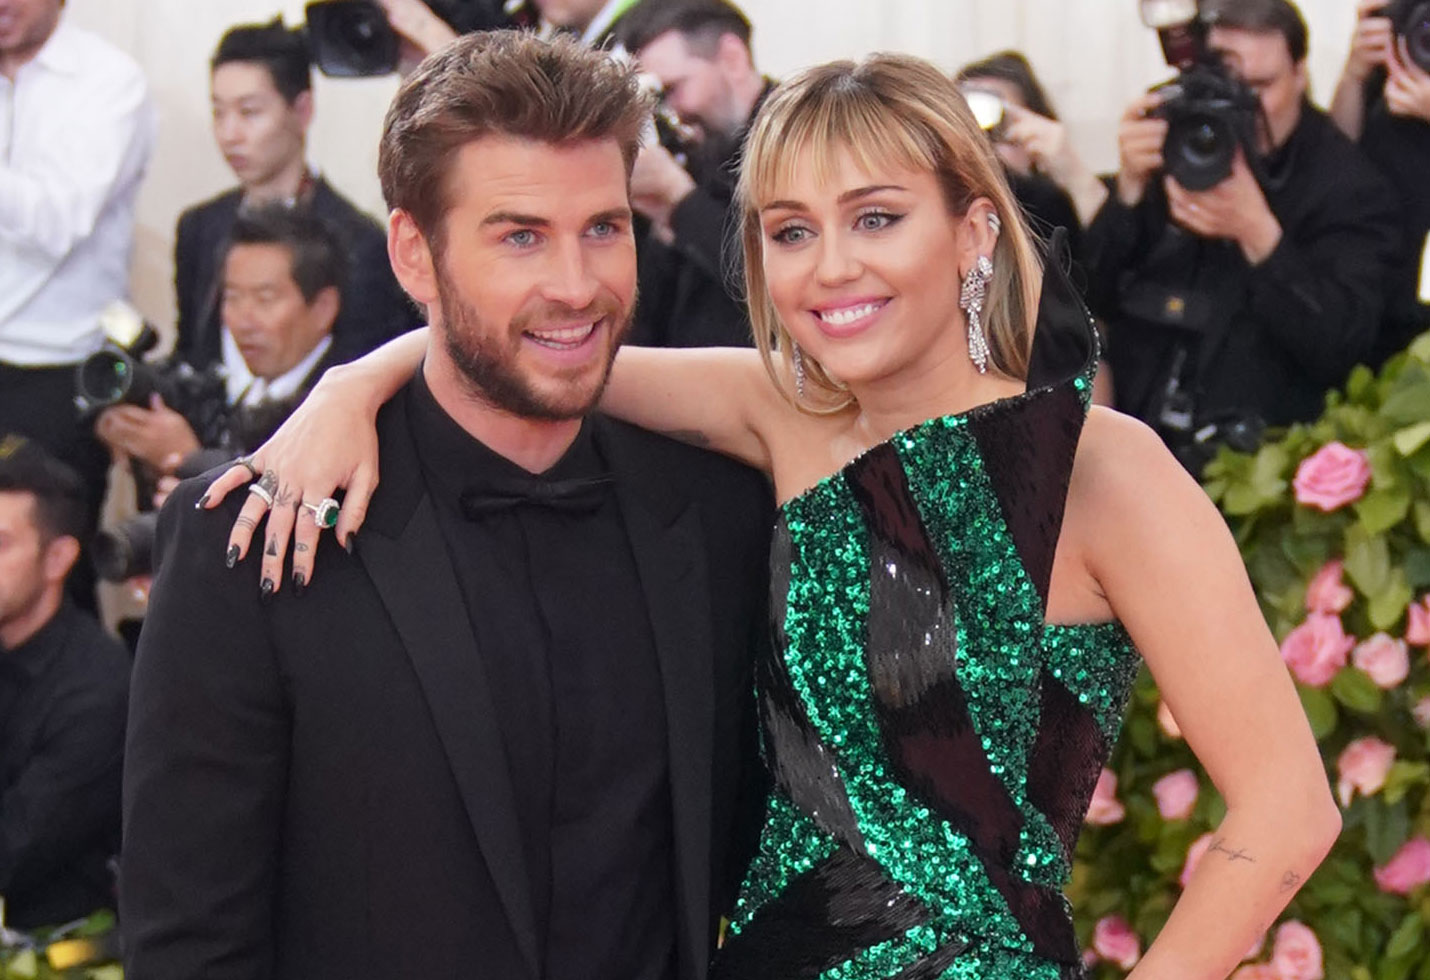 -PICTURED: Liam Hemsworth and Miley Cyrus